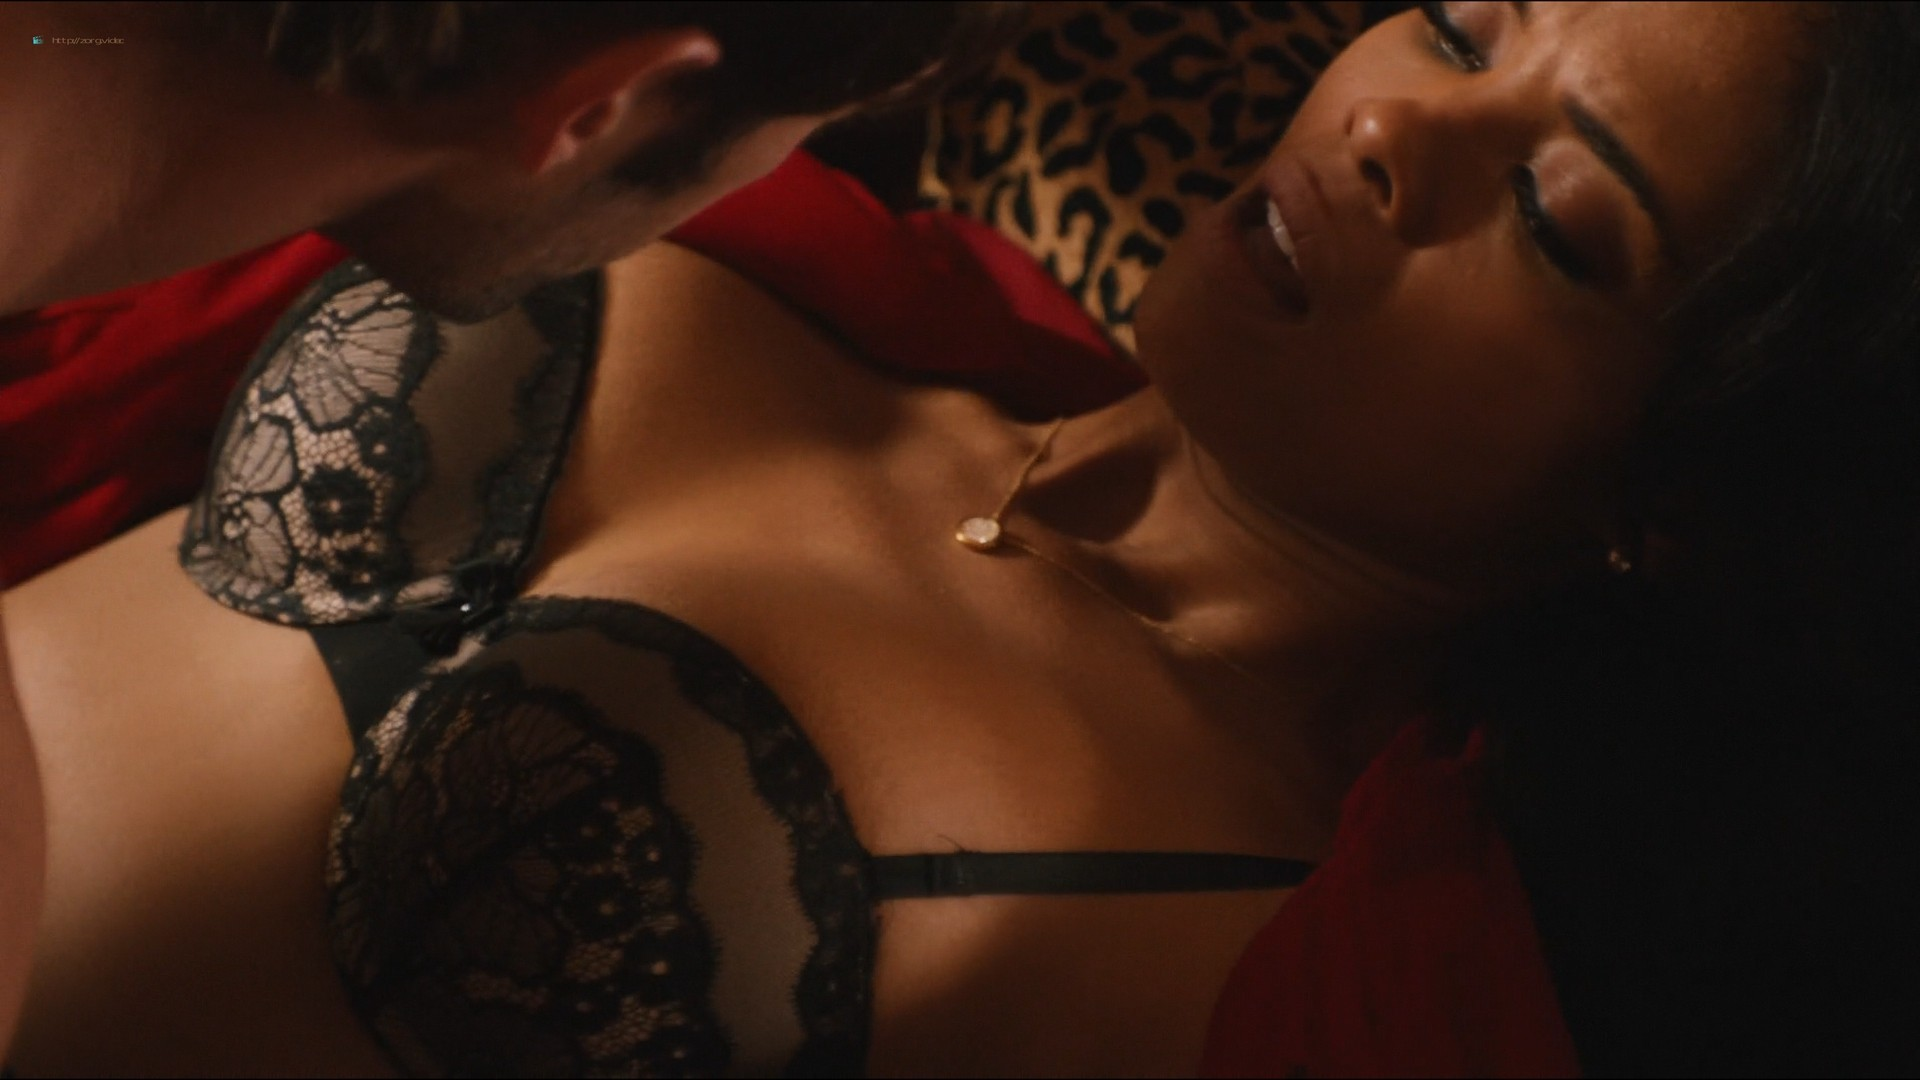 Sharon Leal nude and lot of sex others nude too - Addicted (2014) HD 1080p (14)